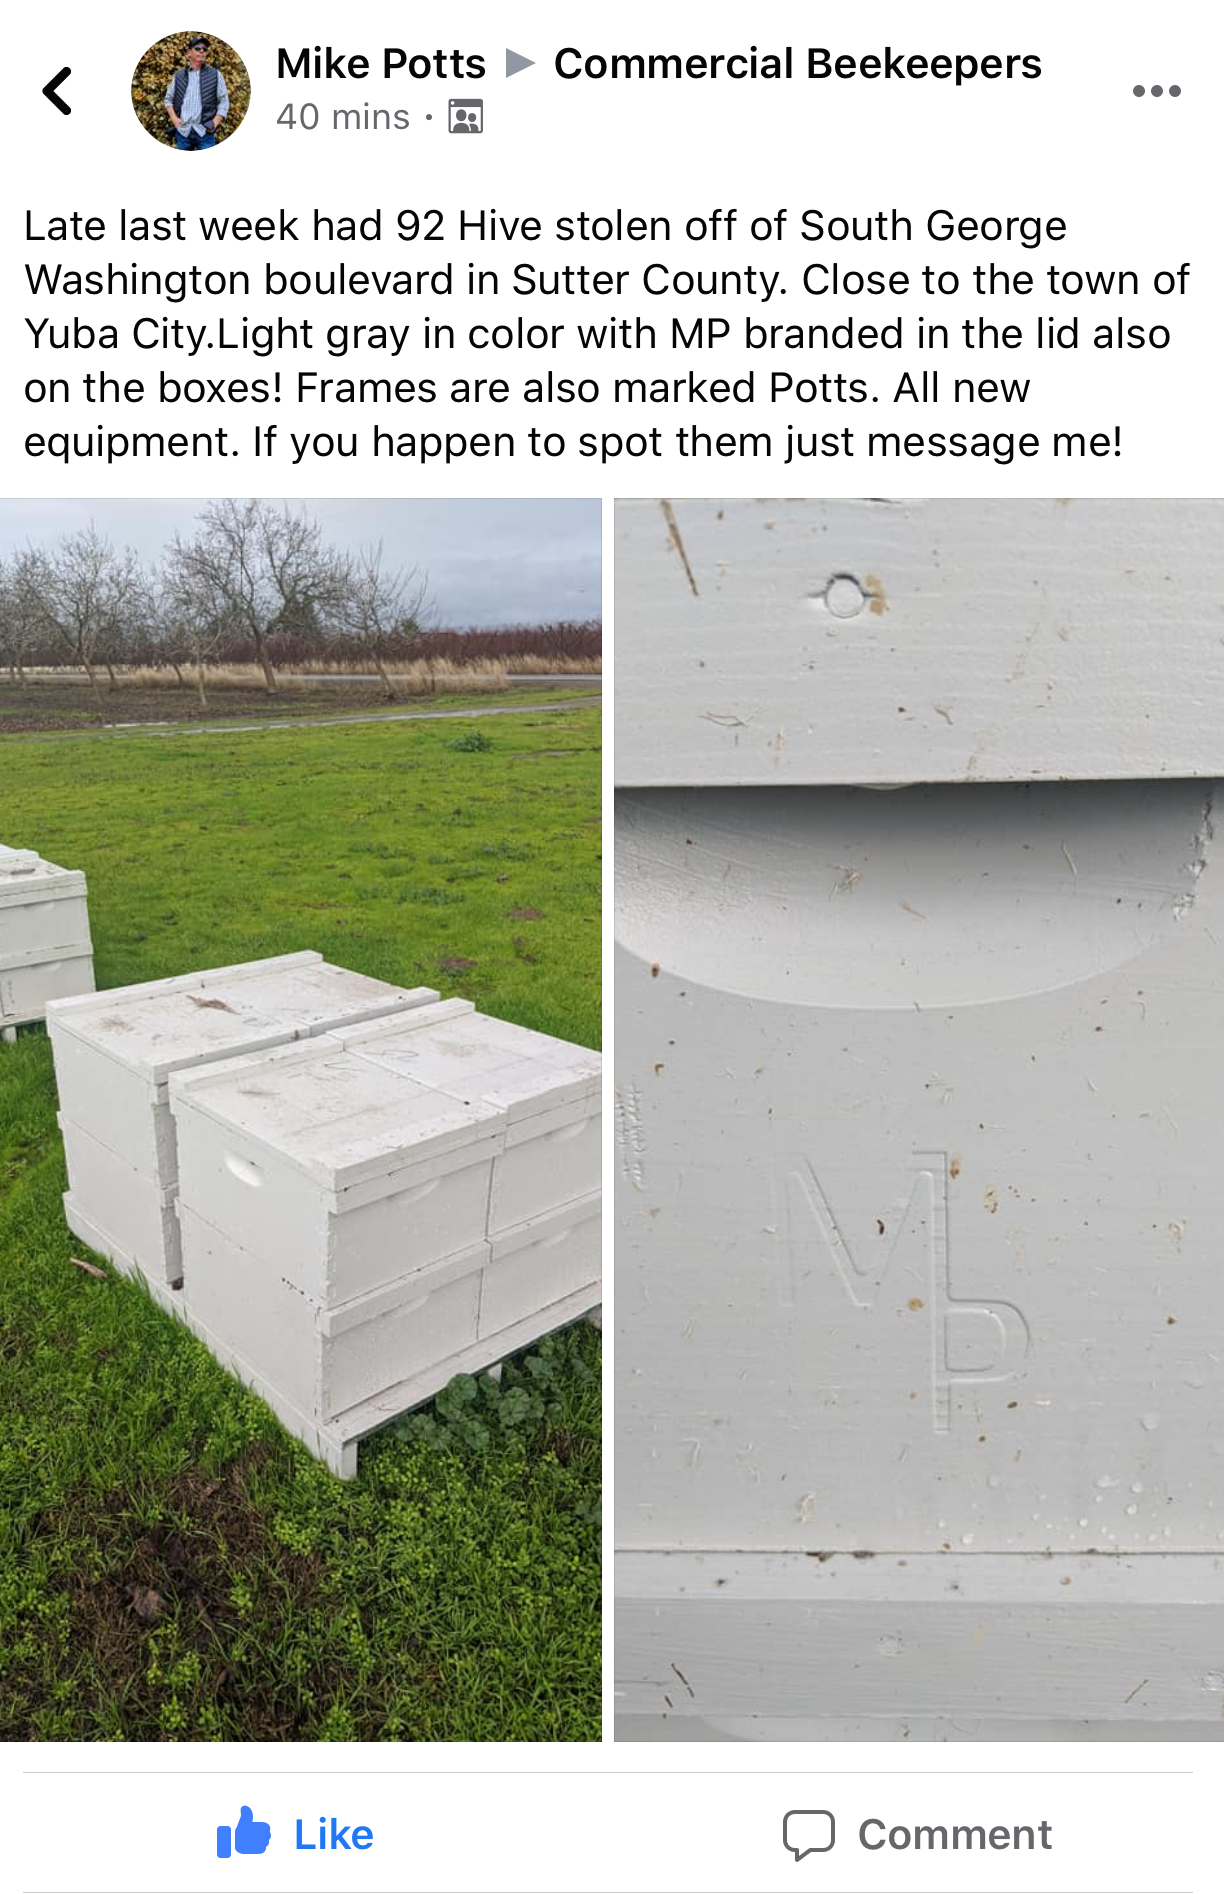 January 17, 2020 – Hive Theft Alert